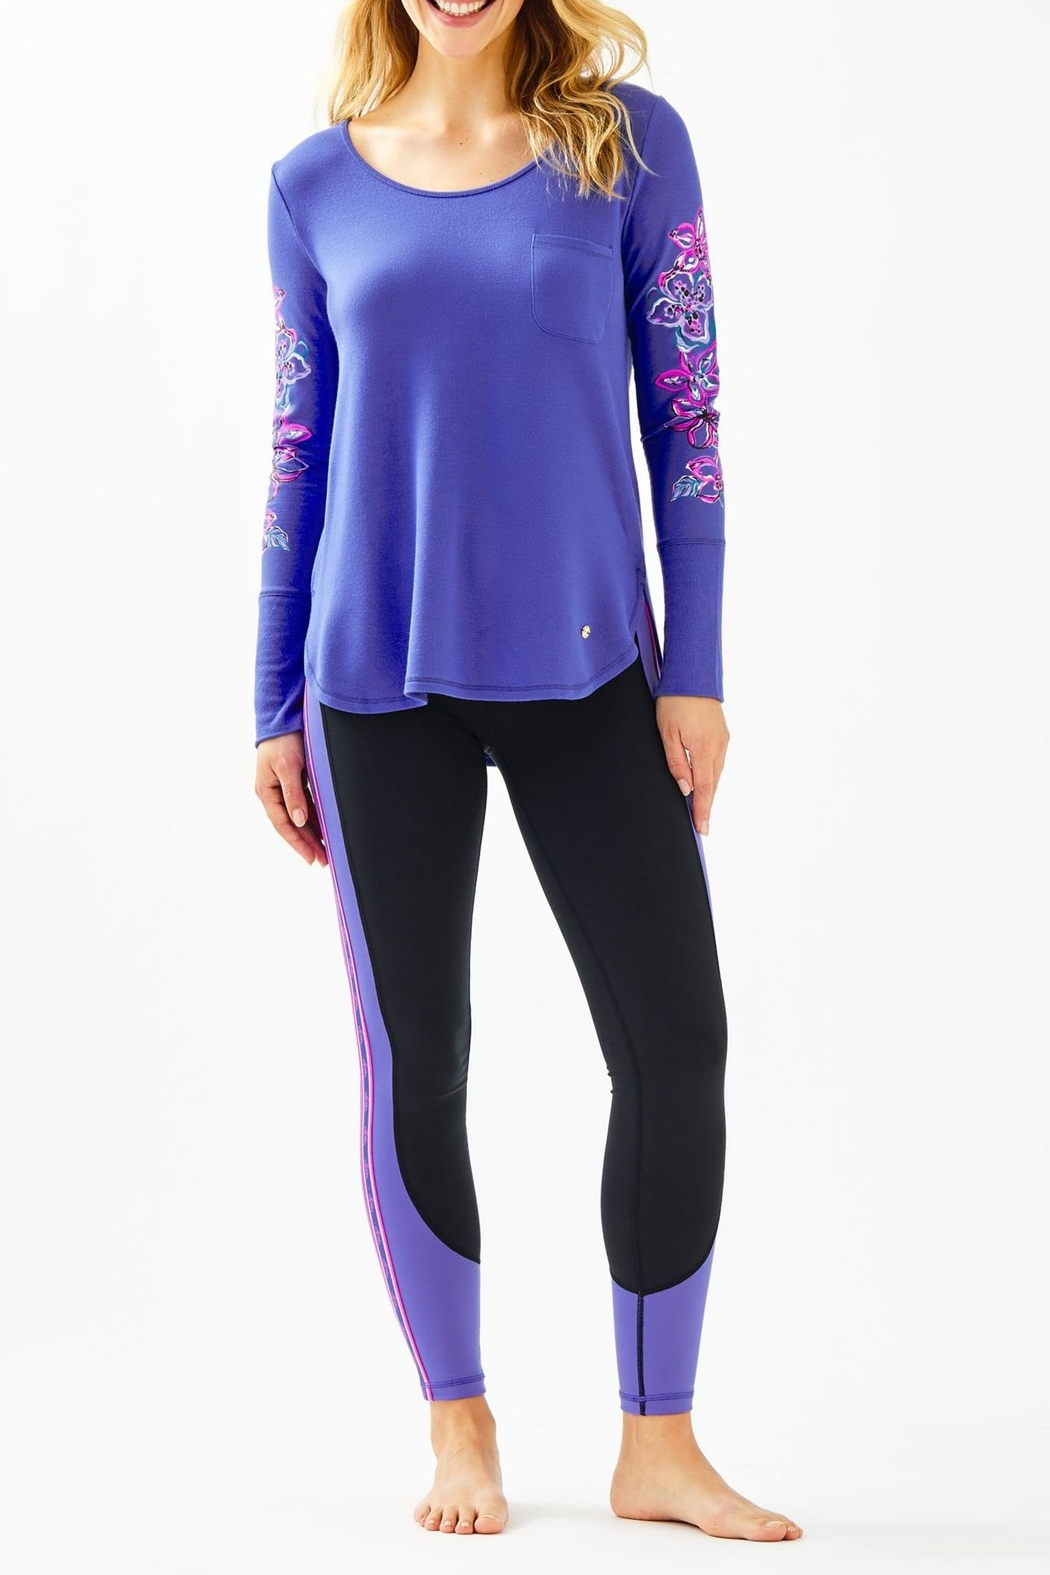 Lilly Pulitzer Luxletic Weekender Legging - Back Cropped Image